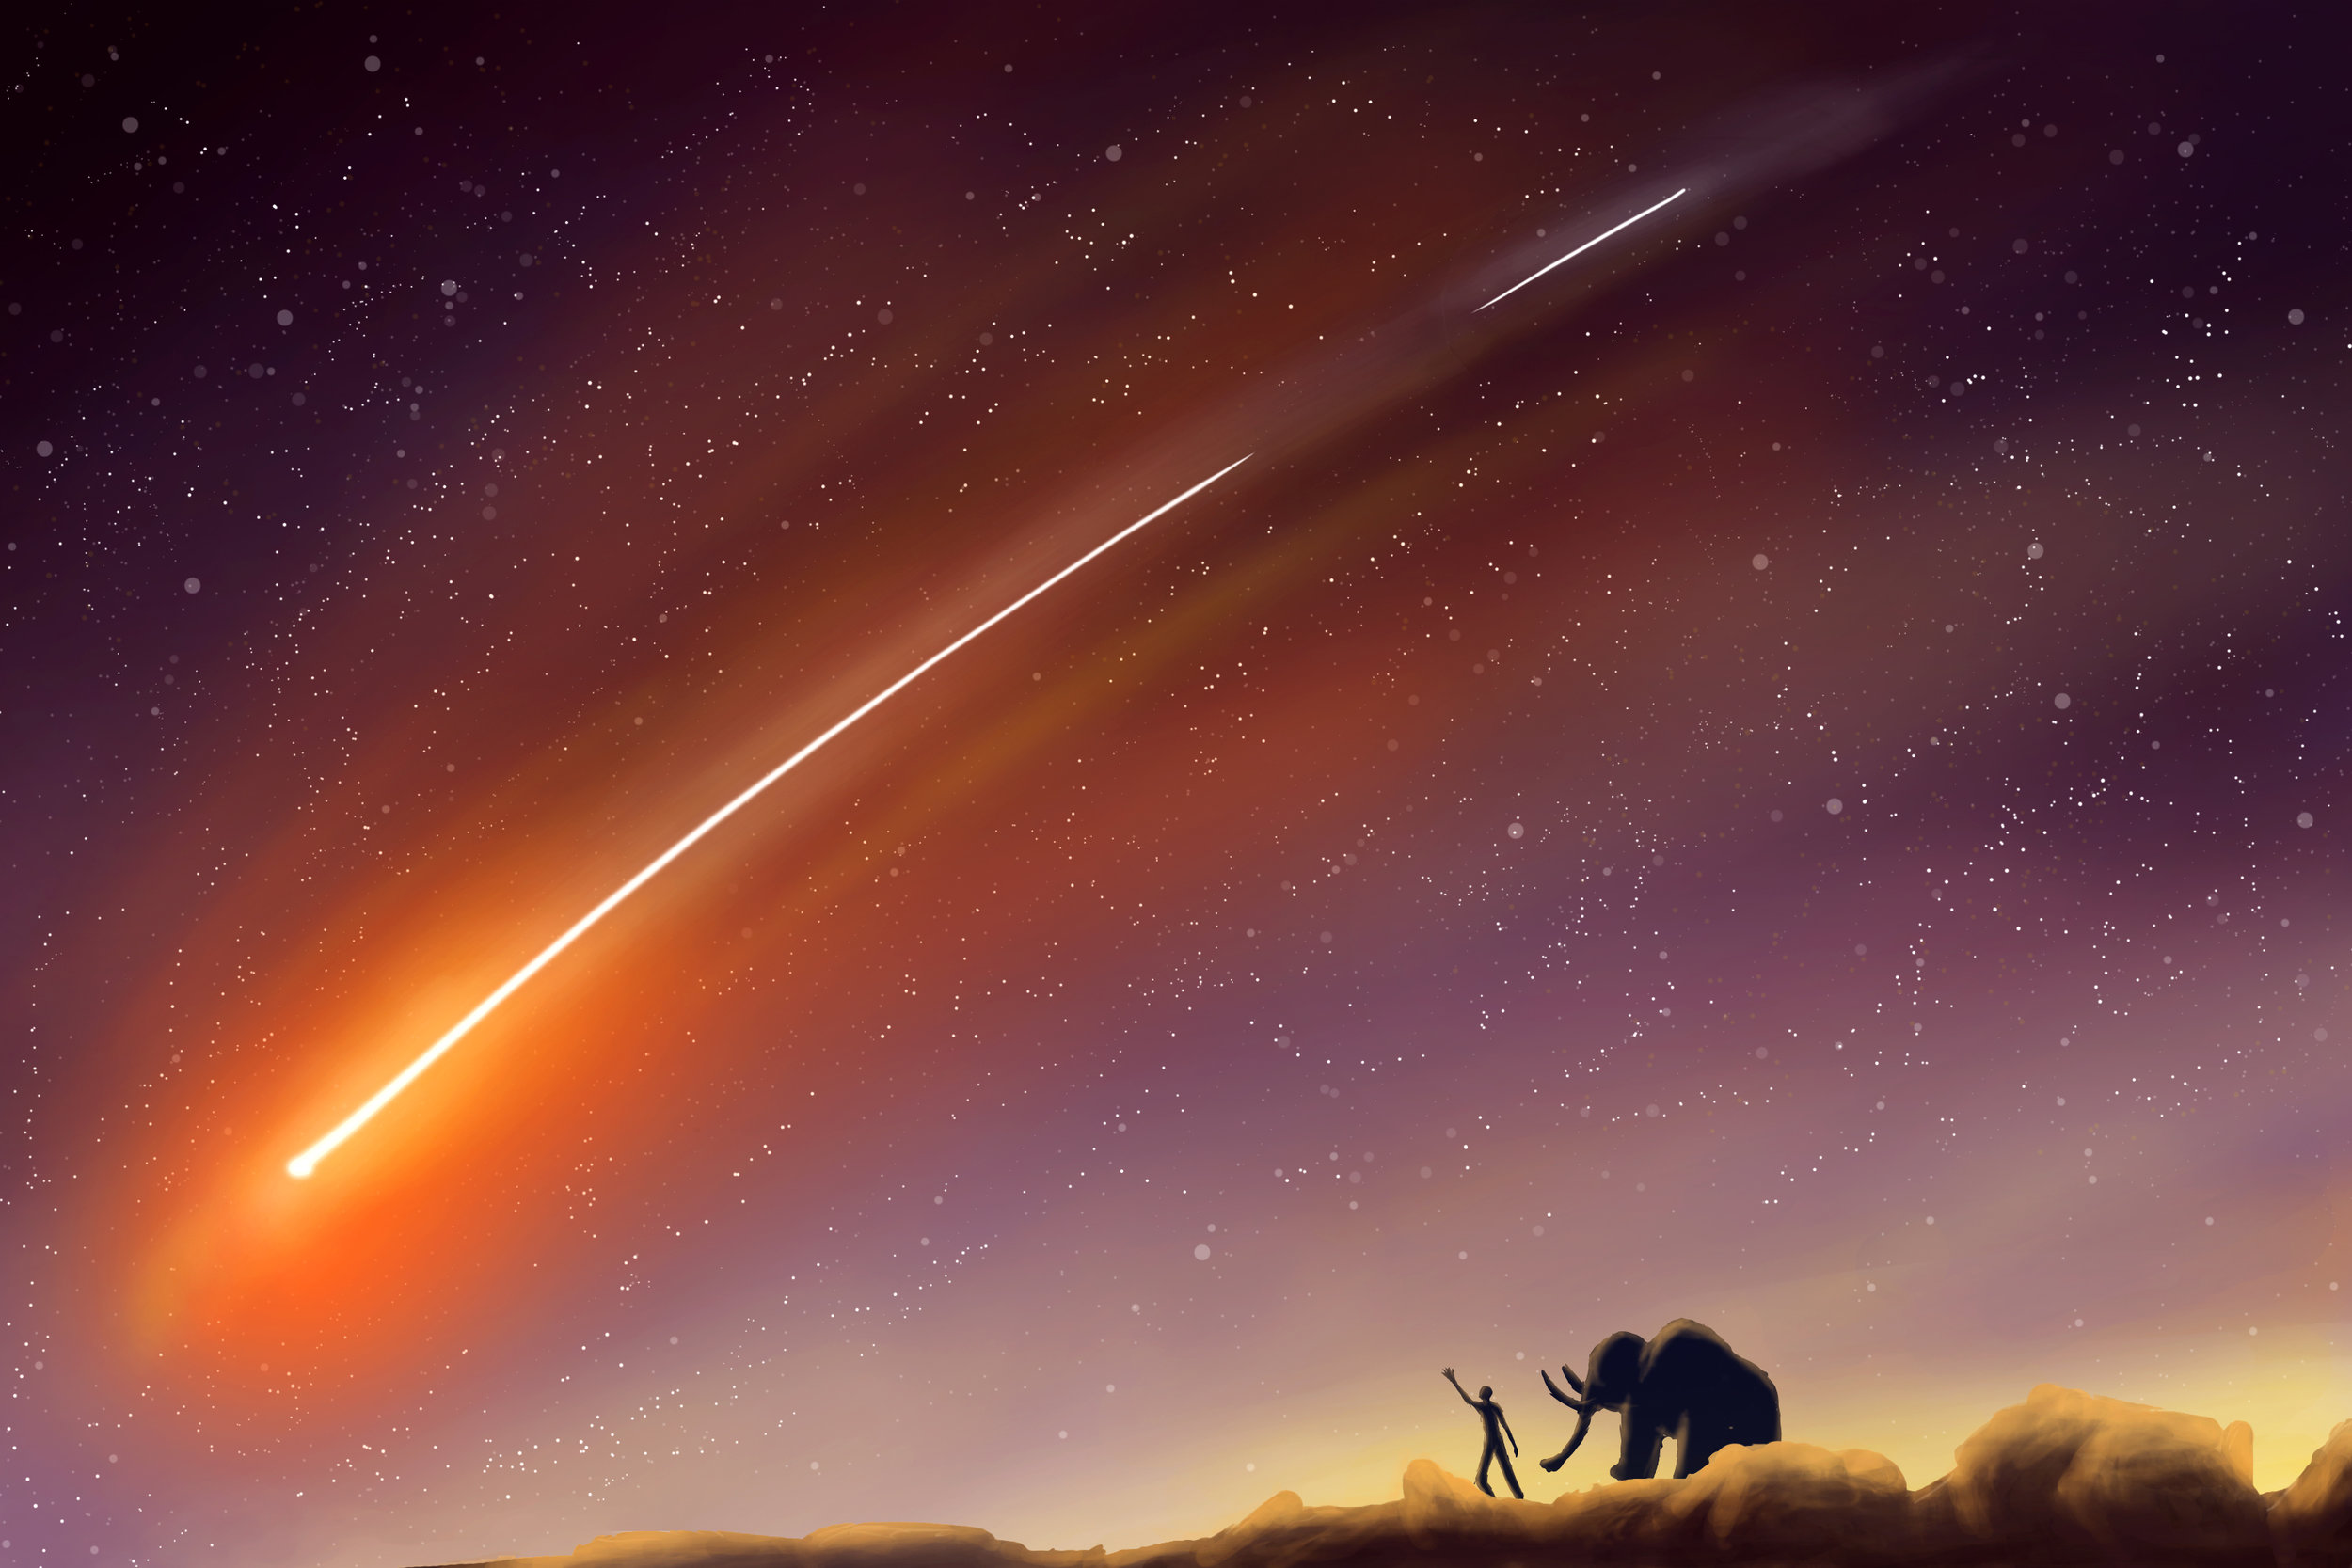 Titled  Comet,  this image became the main image on the front page of the website. I digitally painted the image using Photoshop and a Wacom drawing tablet.